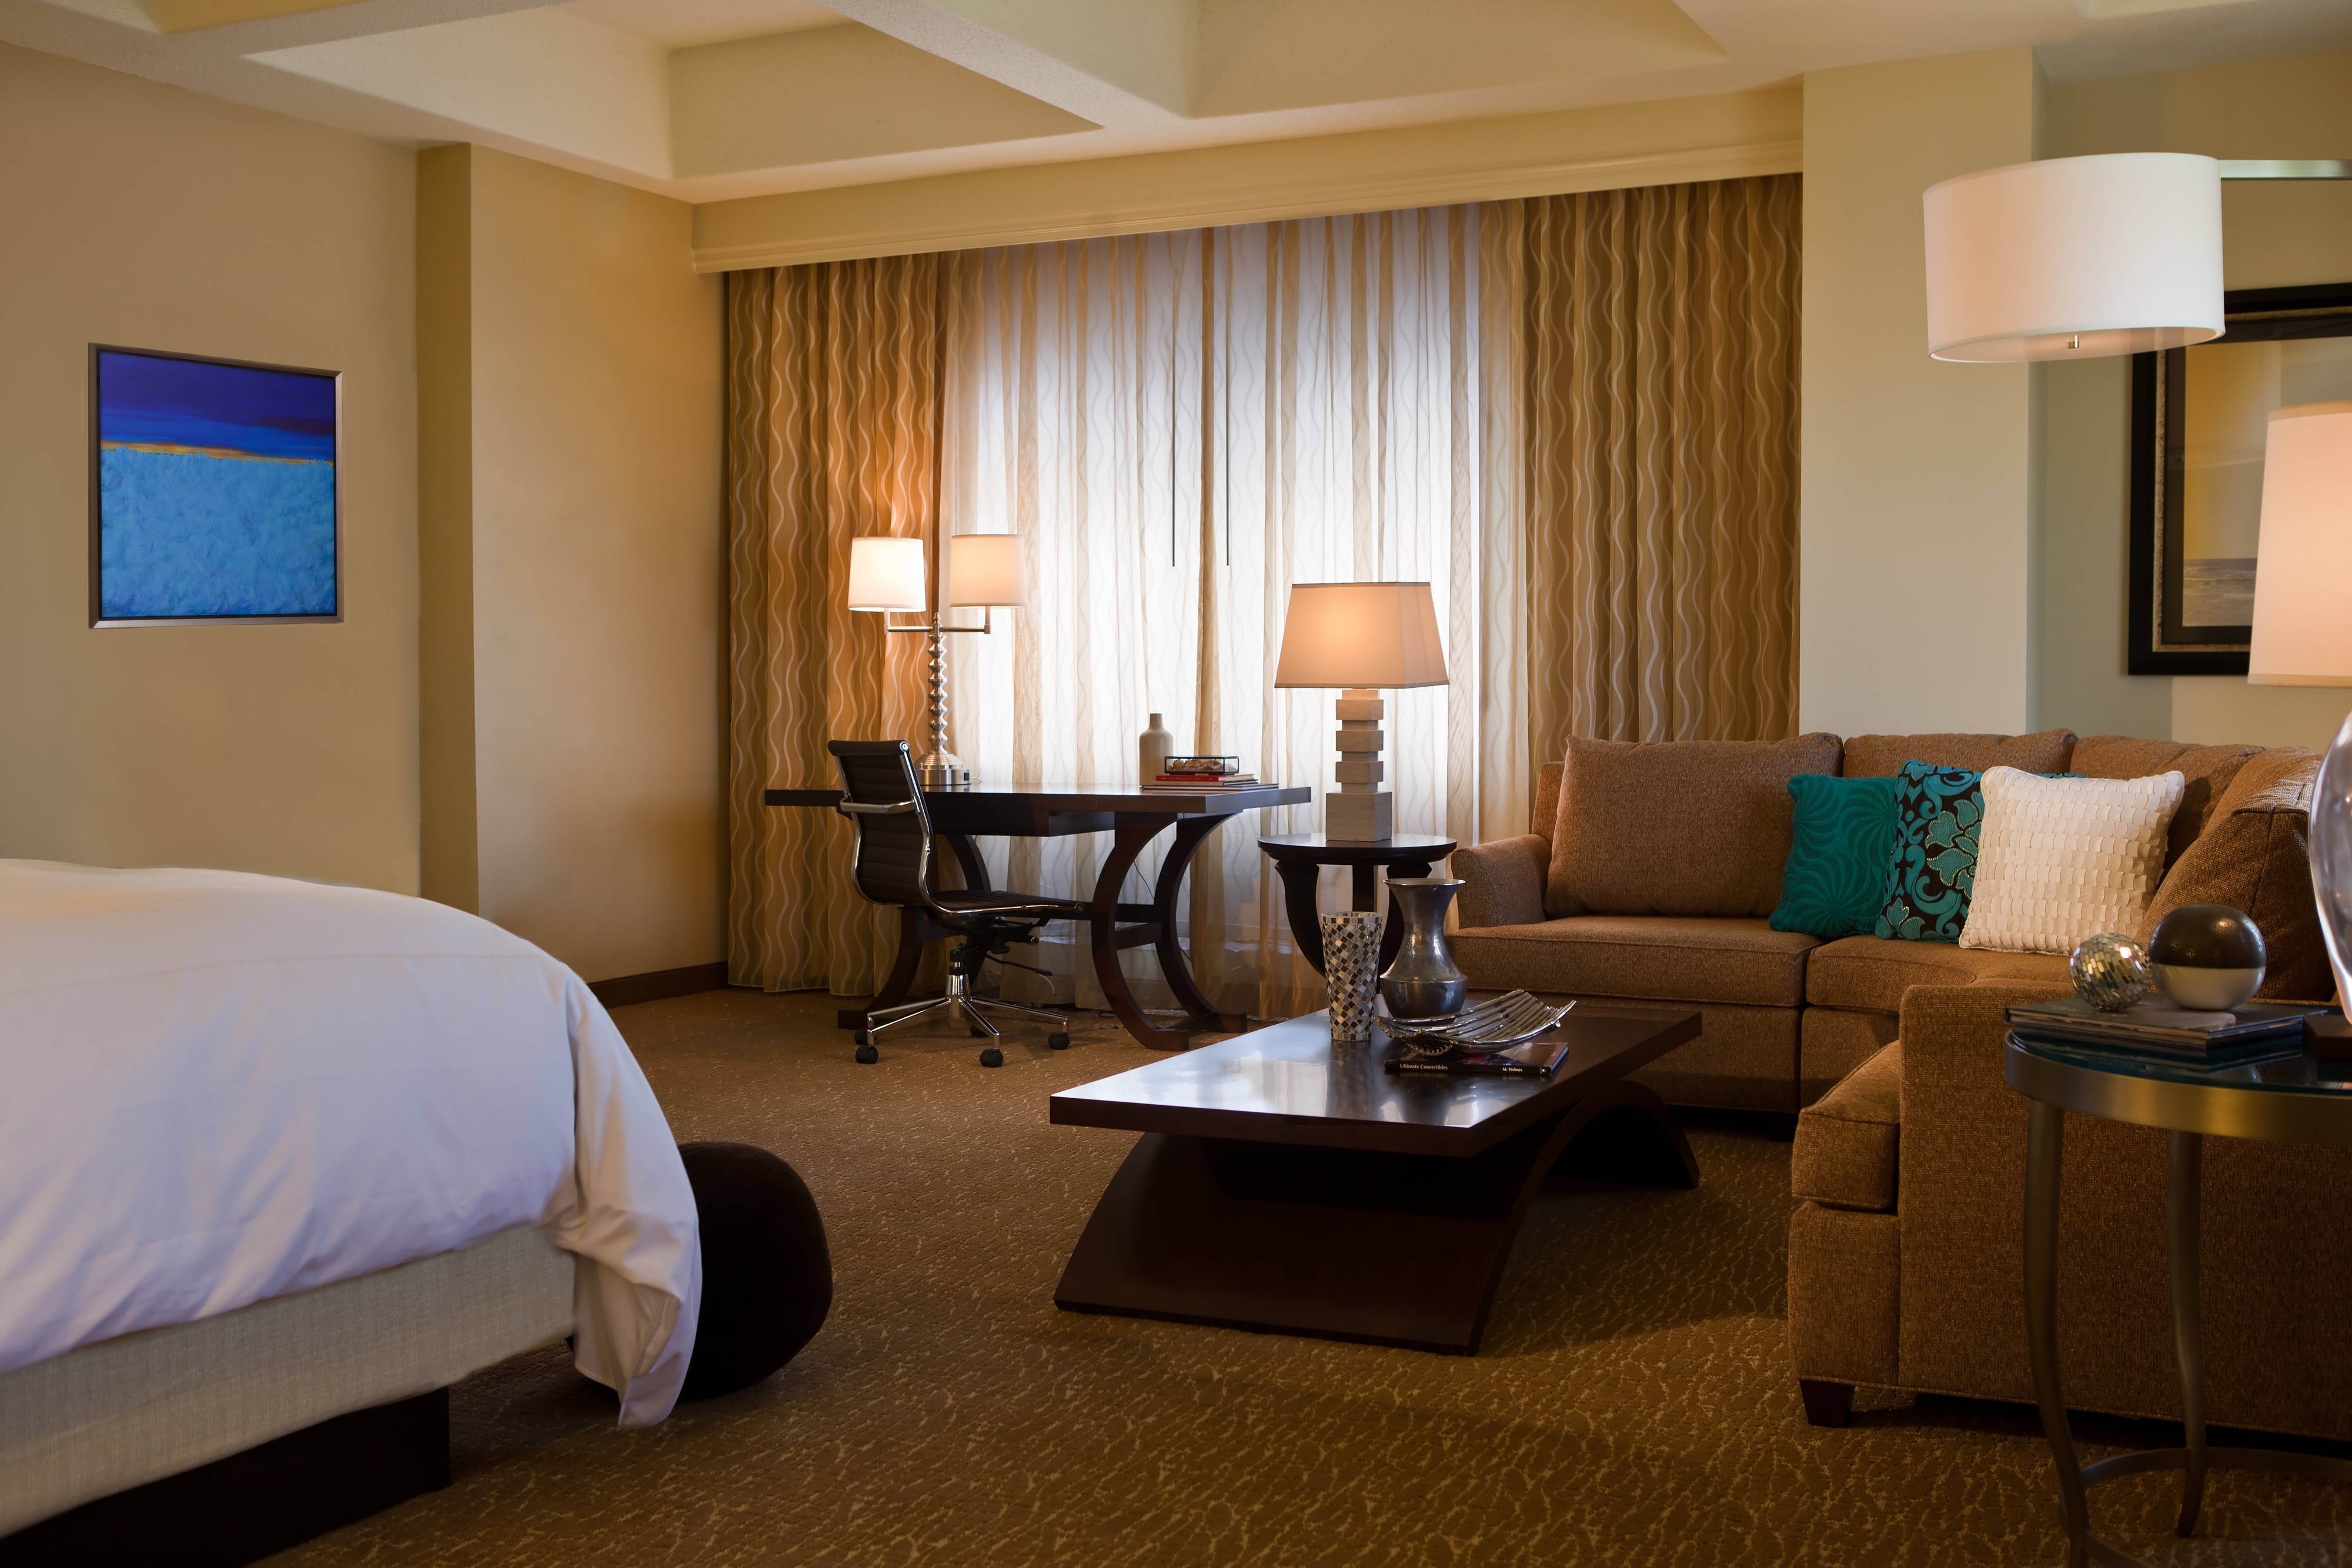 Hotel Rooms Near Seaworld Orlando Florida Renaissance